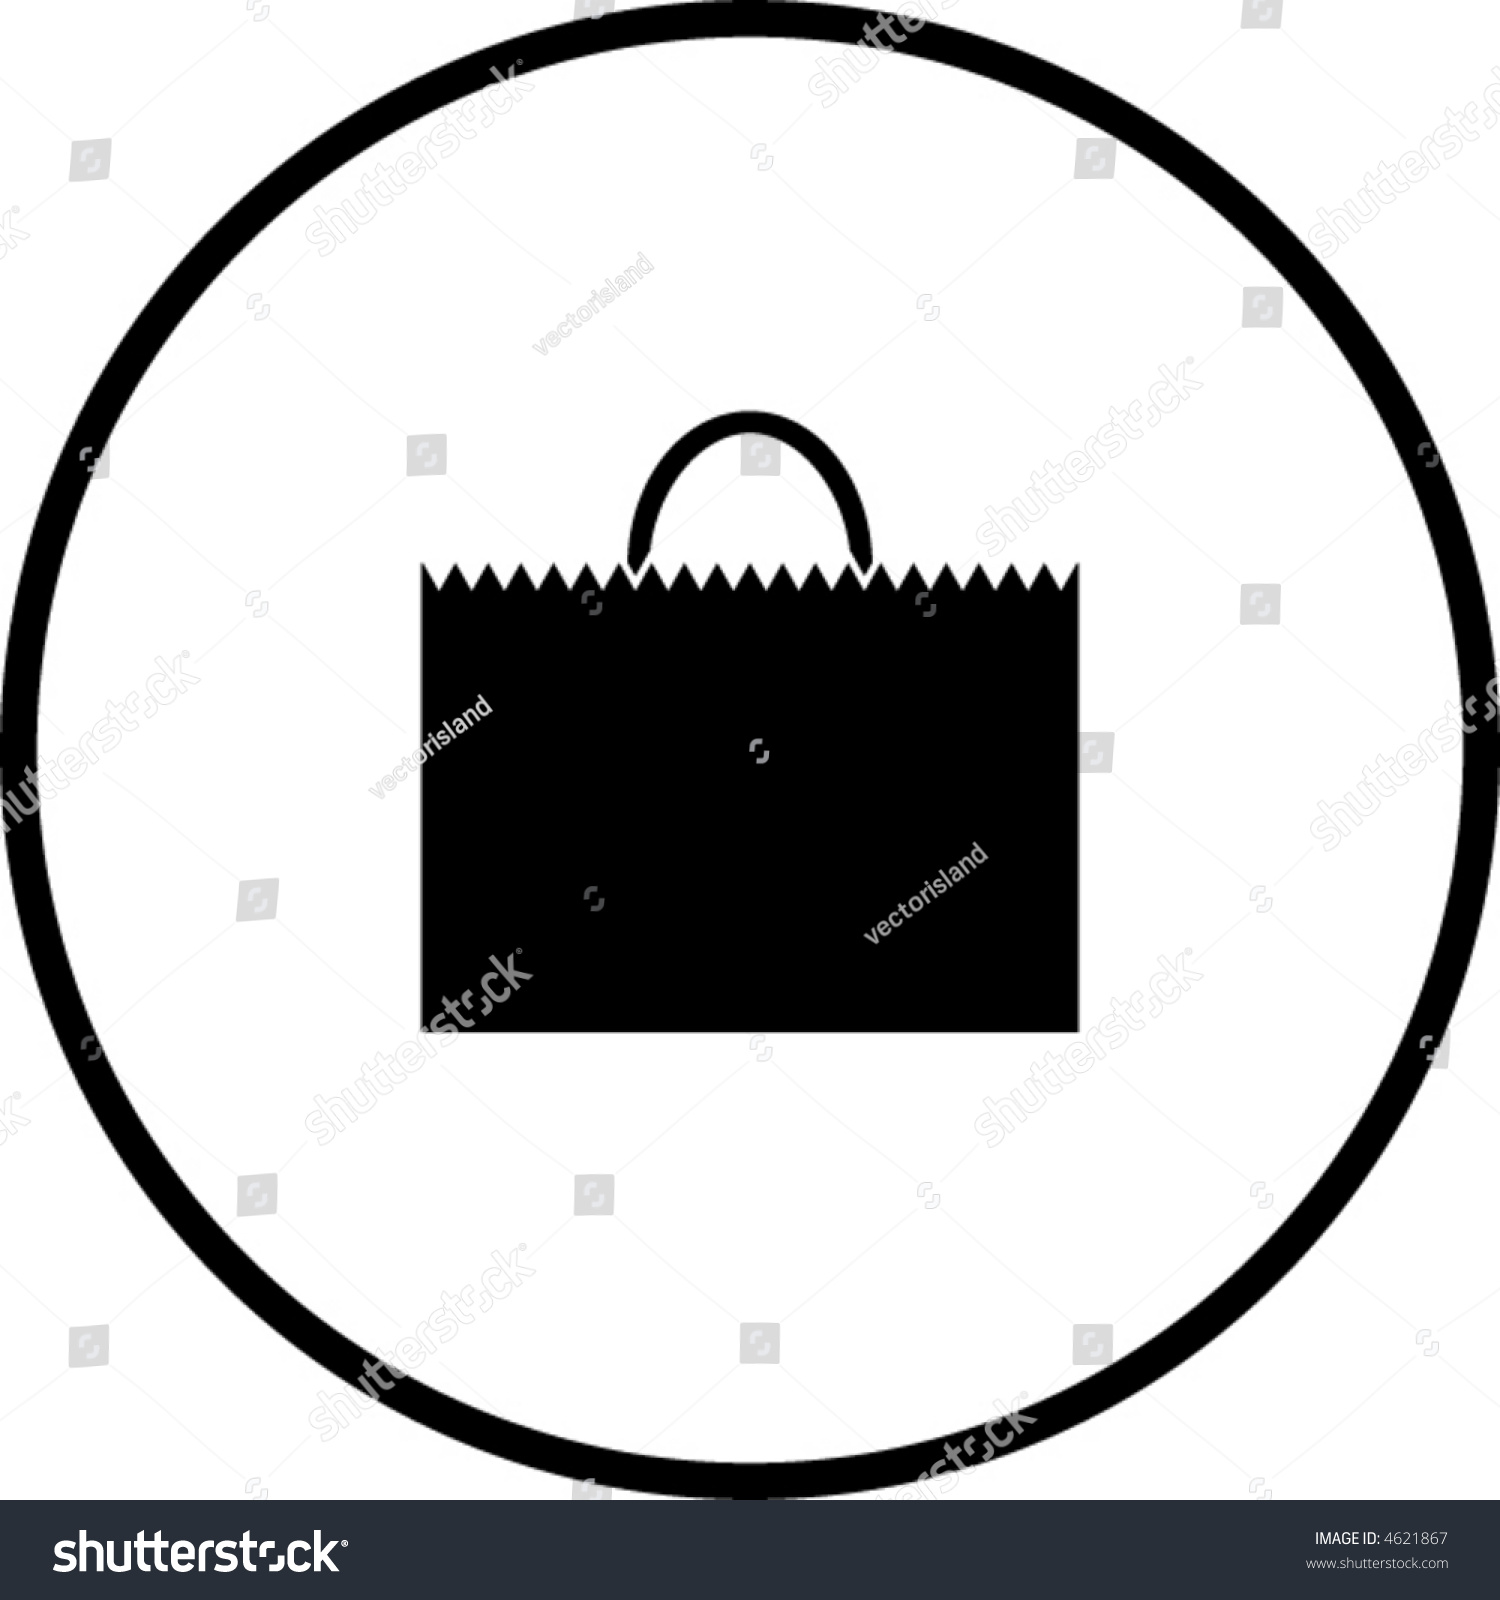 Shopping Bag Symbol Stock Vector Illustration 4621867 : Shutterstock